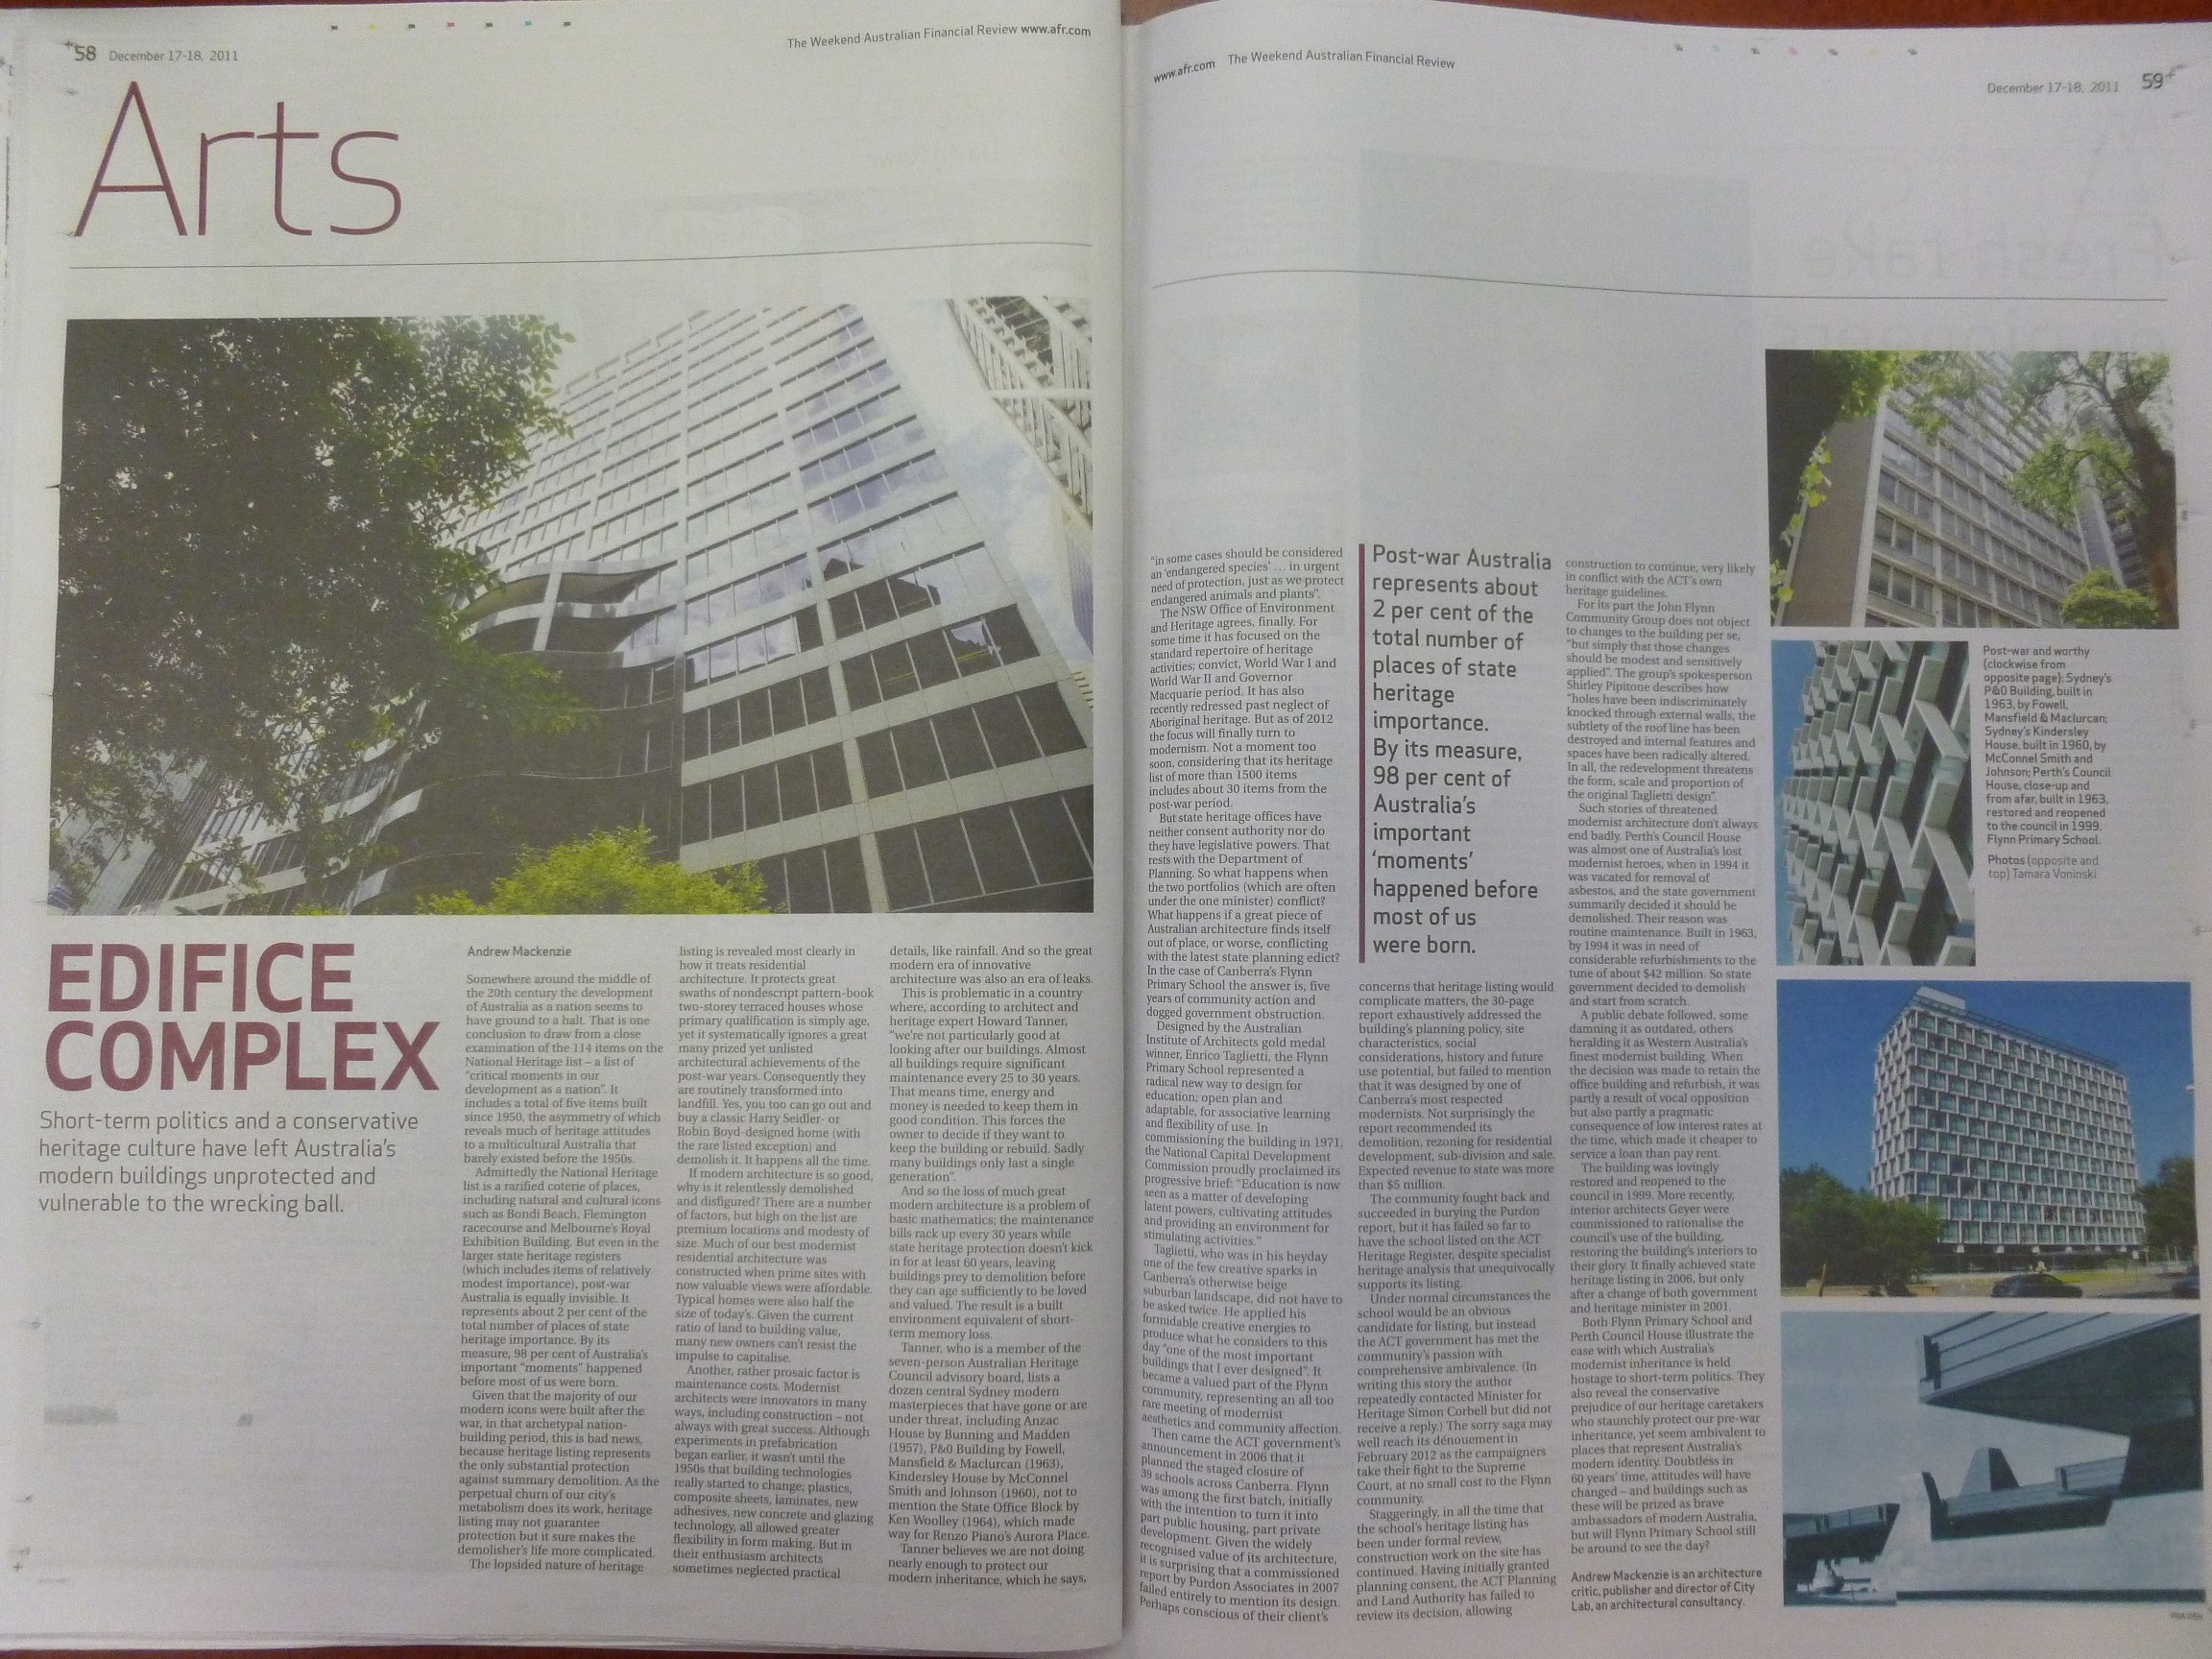 Edifice complex - copy of Australian Financial Review, 17-18 December 2011, p. 59